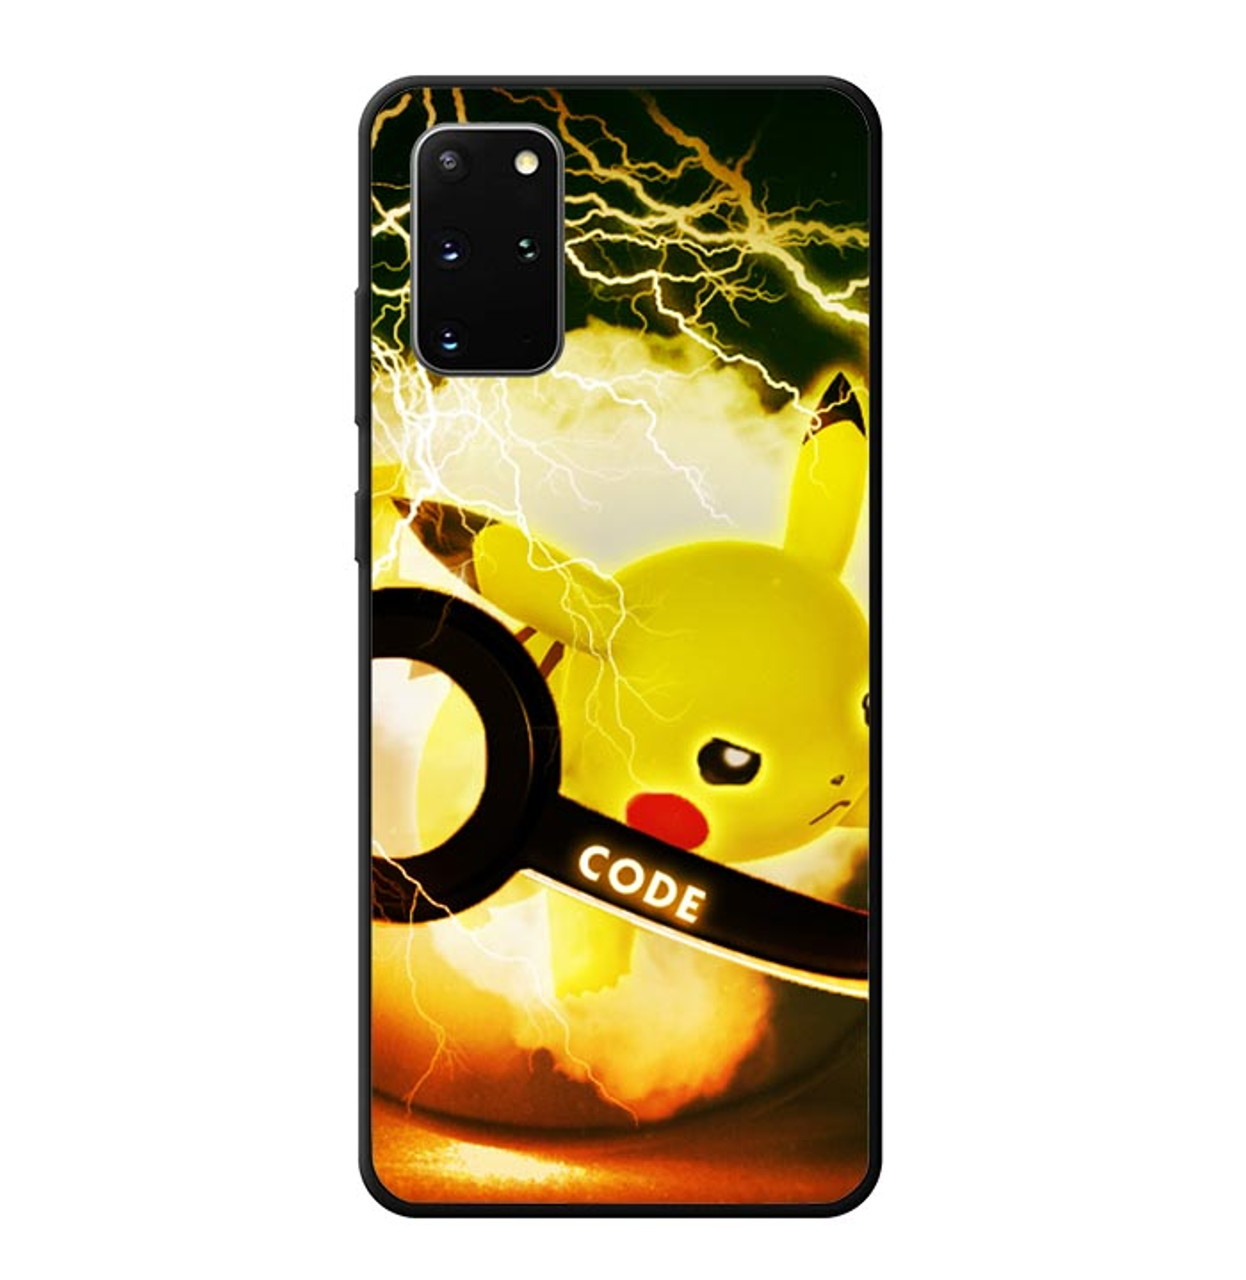 Pikacu Pokemon Ball Wallpaper Y1834 Samsung Galaxy S20 Plus S20 5g Case Case Flazzy Store